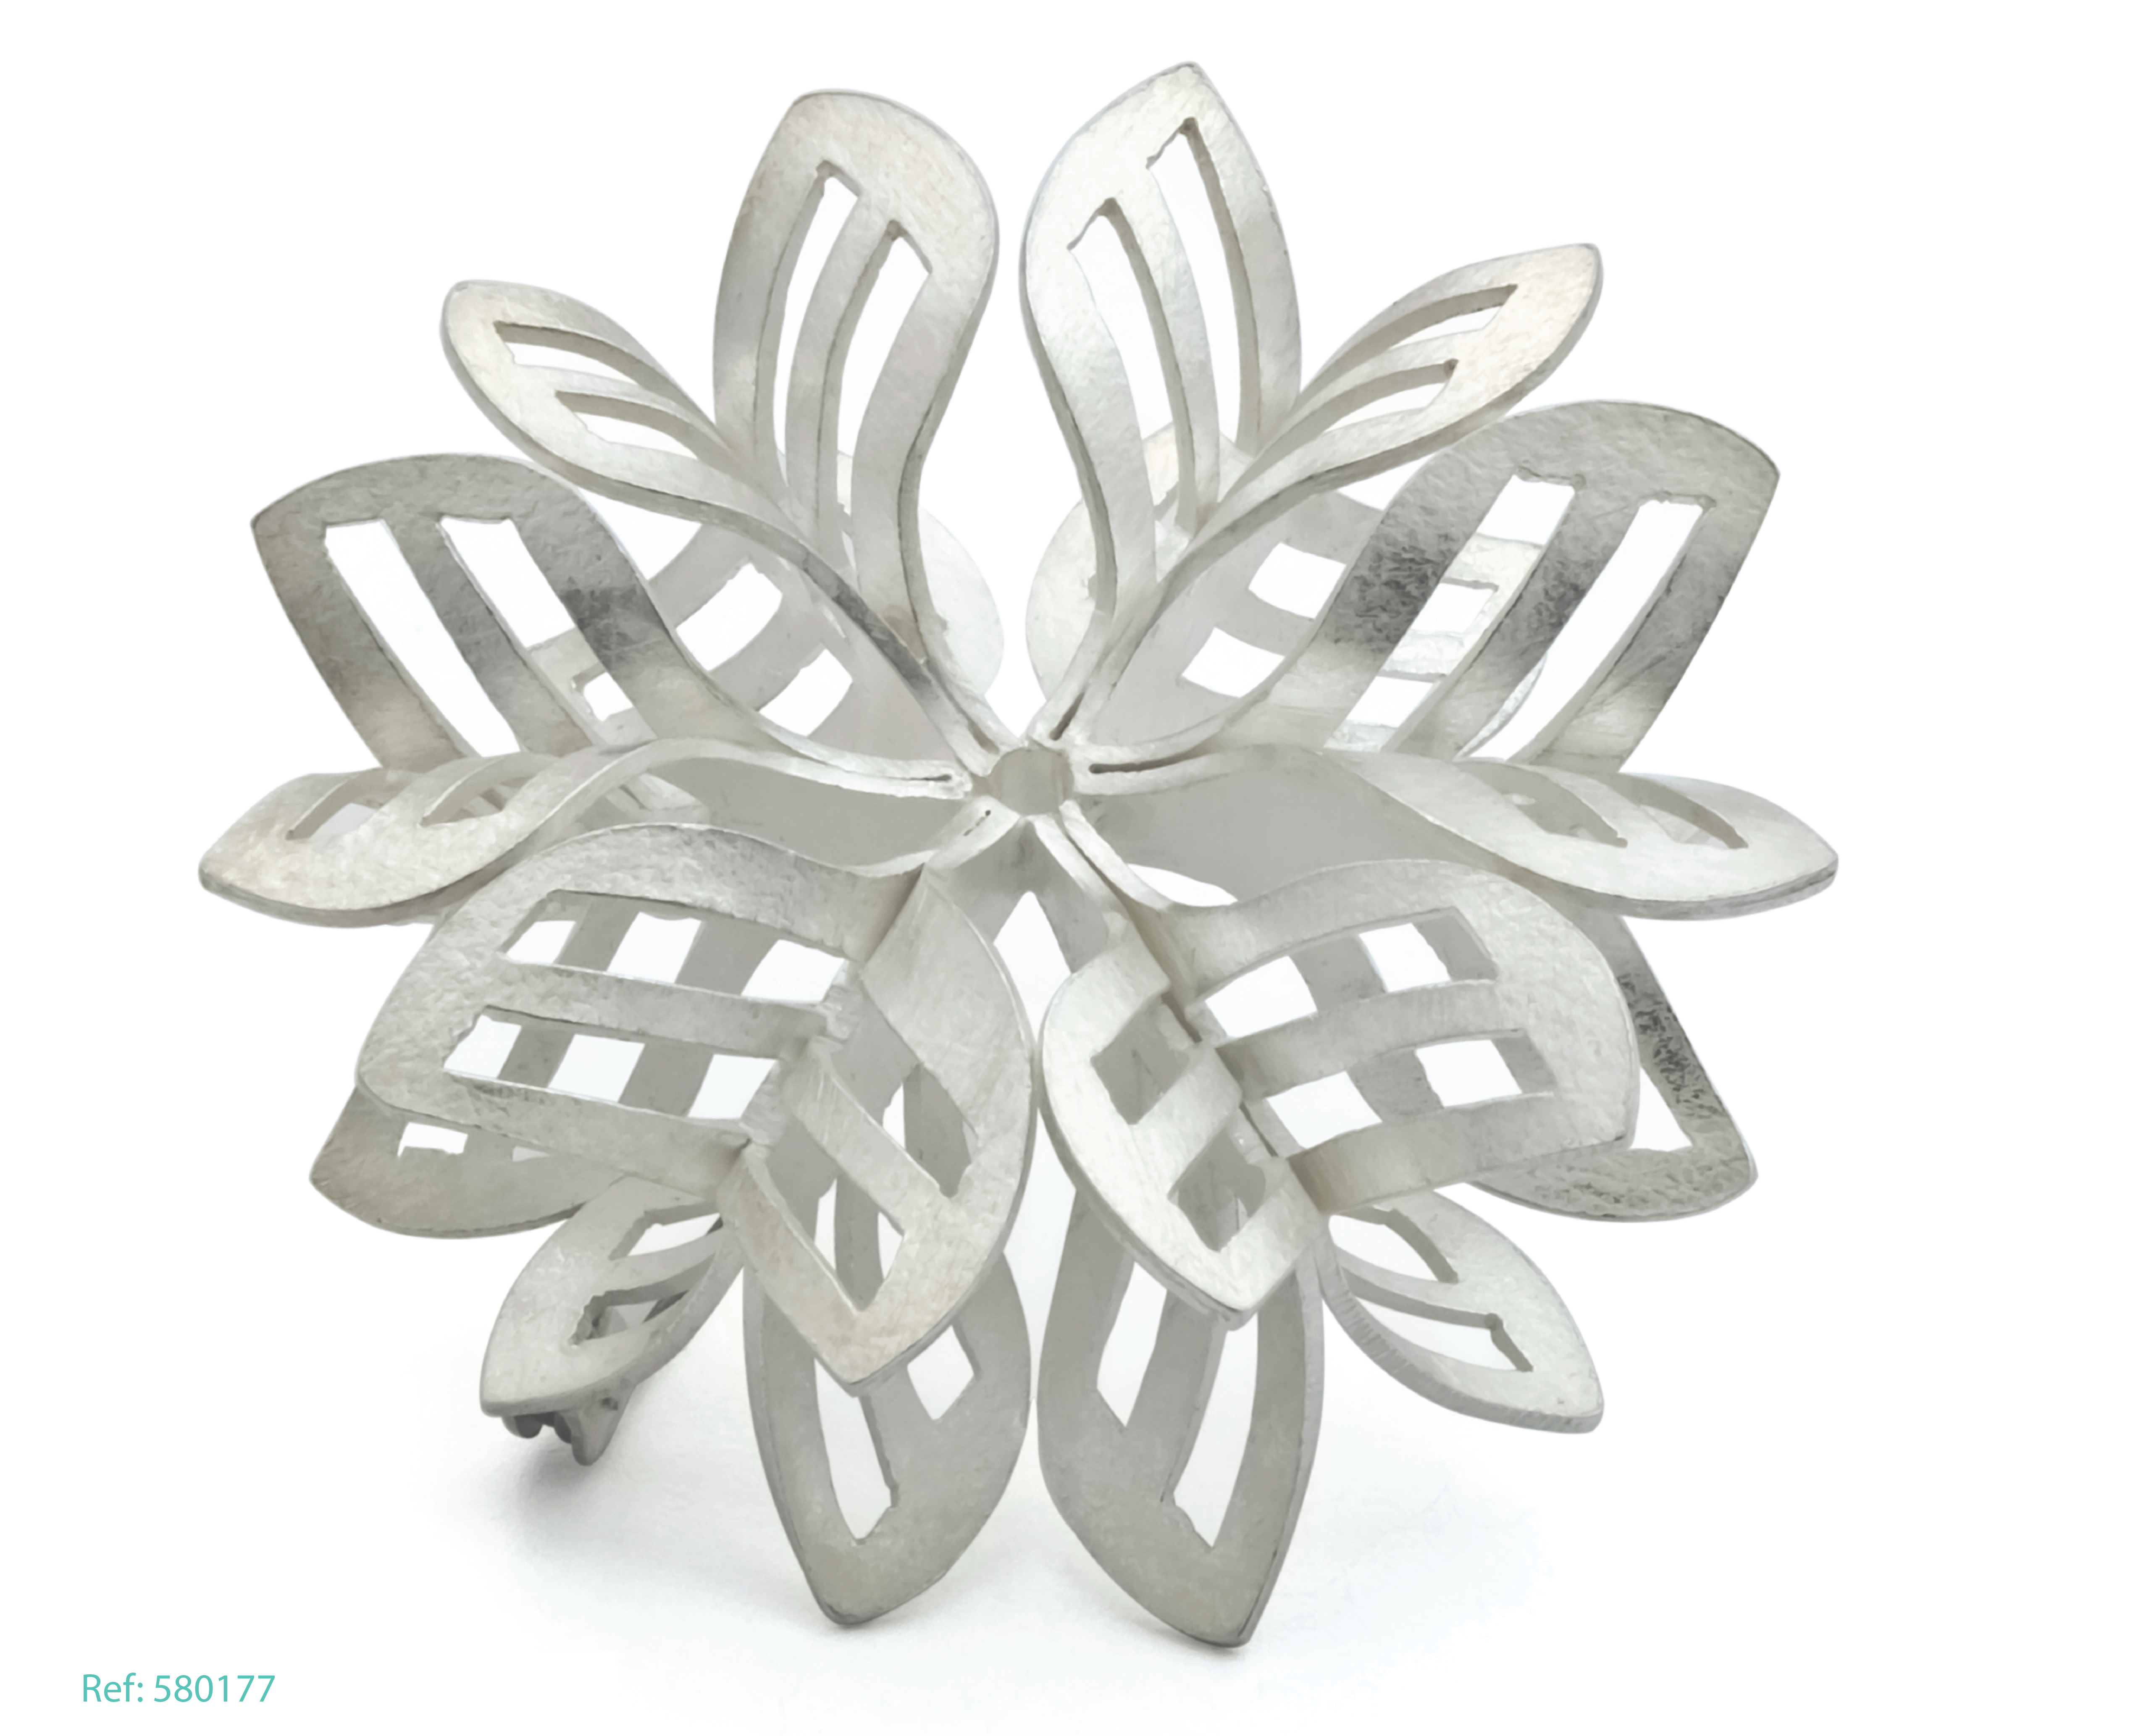 Broche multihoja Ref- 580177